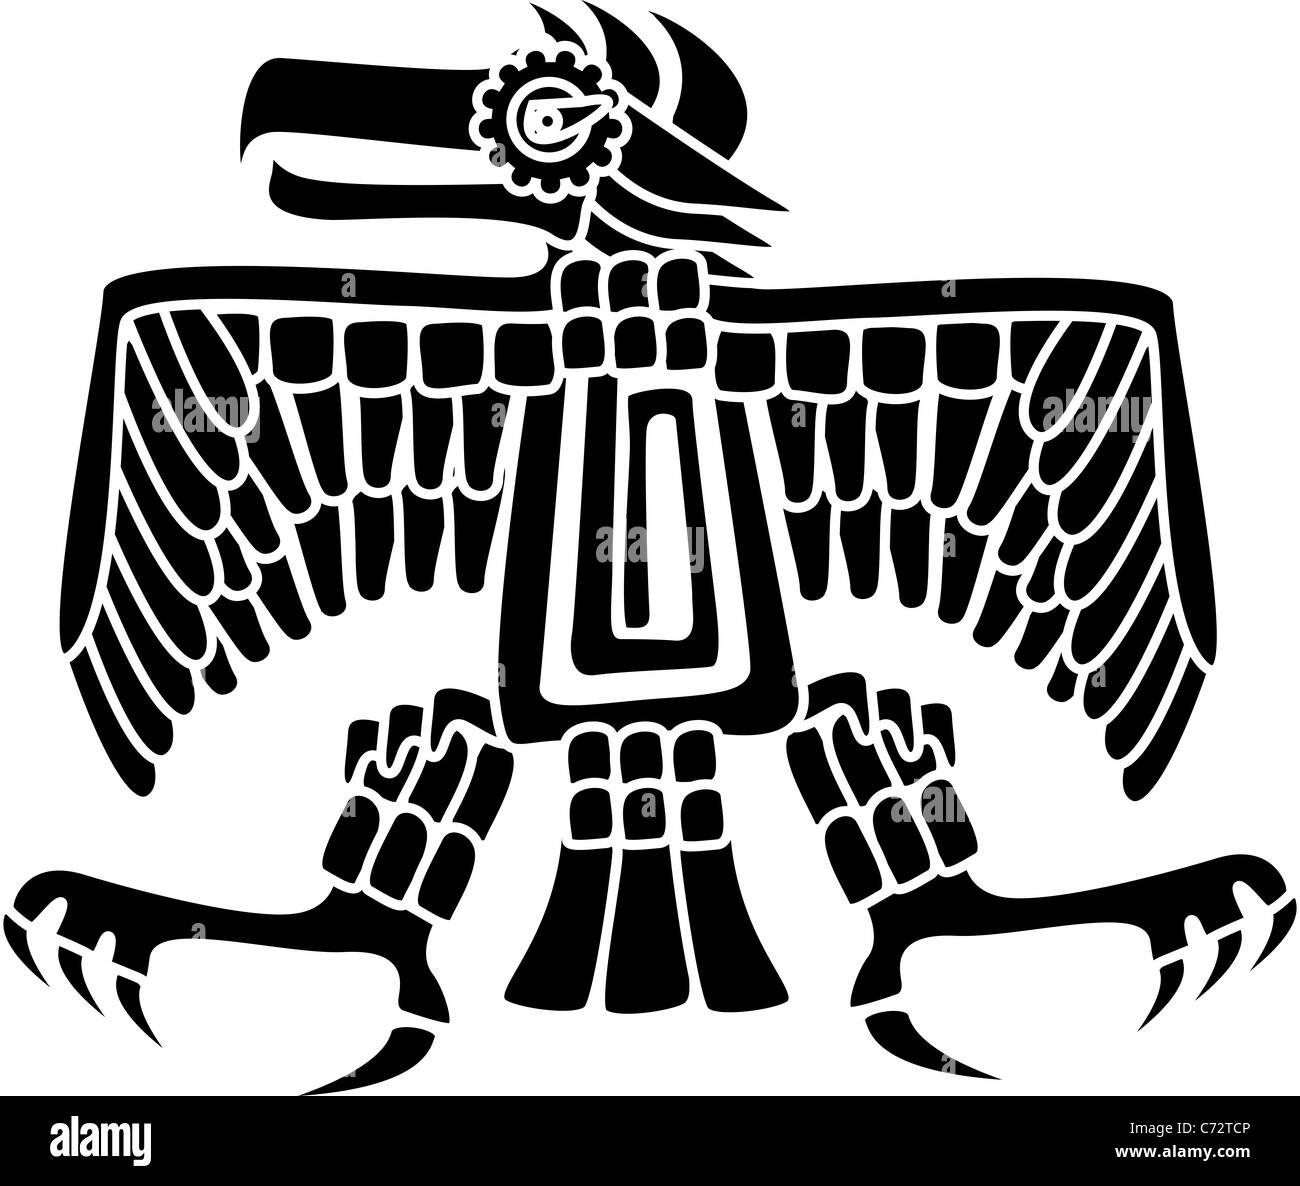 Mayan deity stock photos mayan deity stock images alamy aztec or mayan eagle deity a symbol of strength patience and courage biocorpaavc